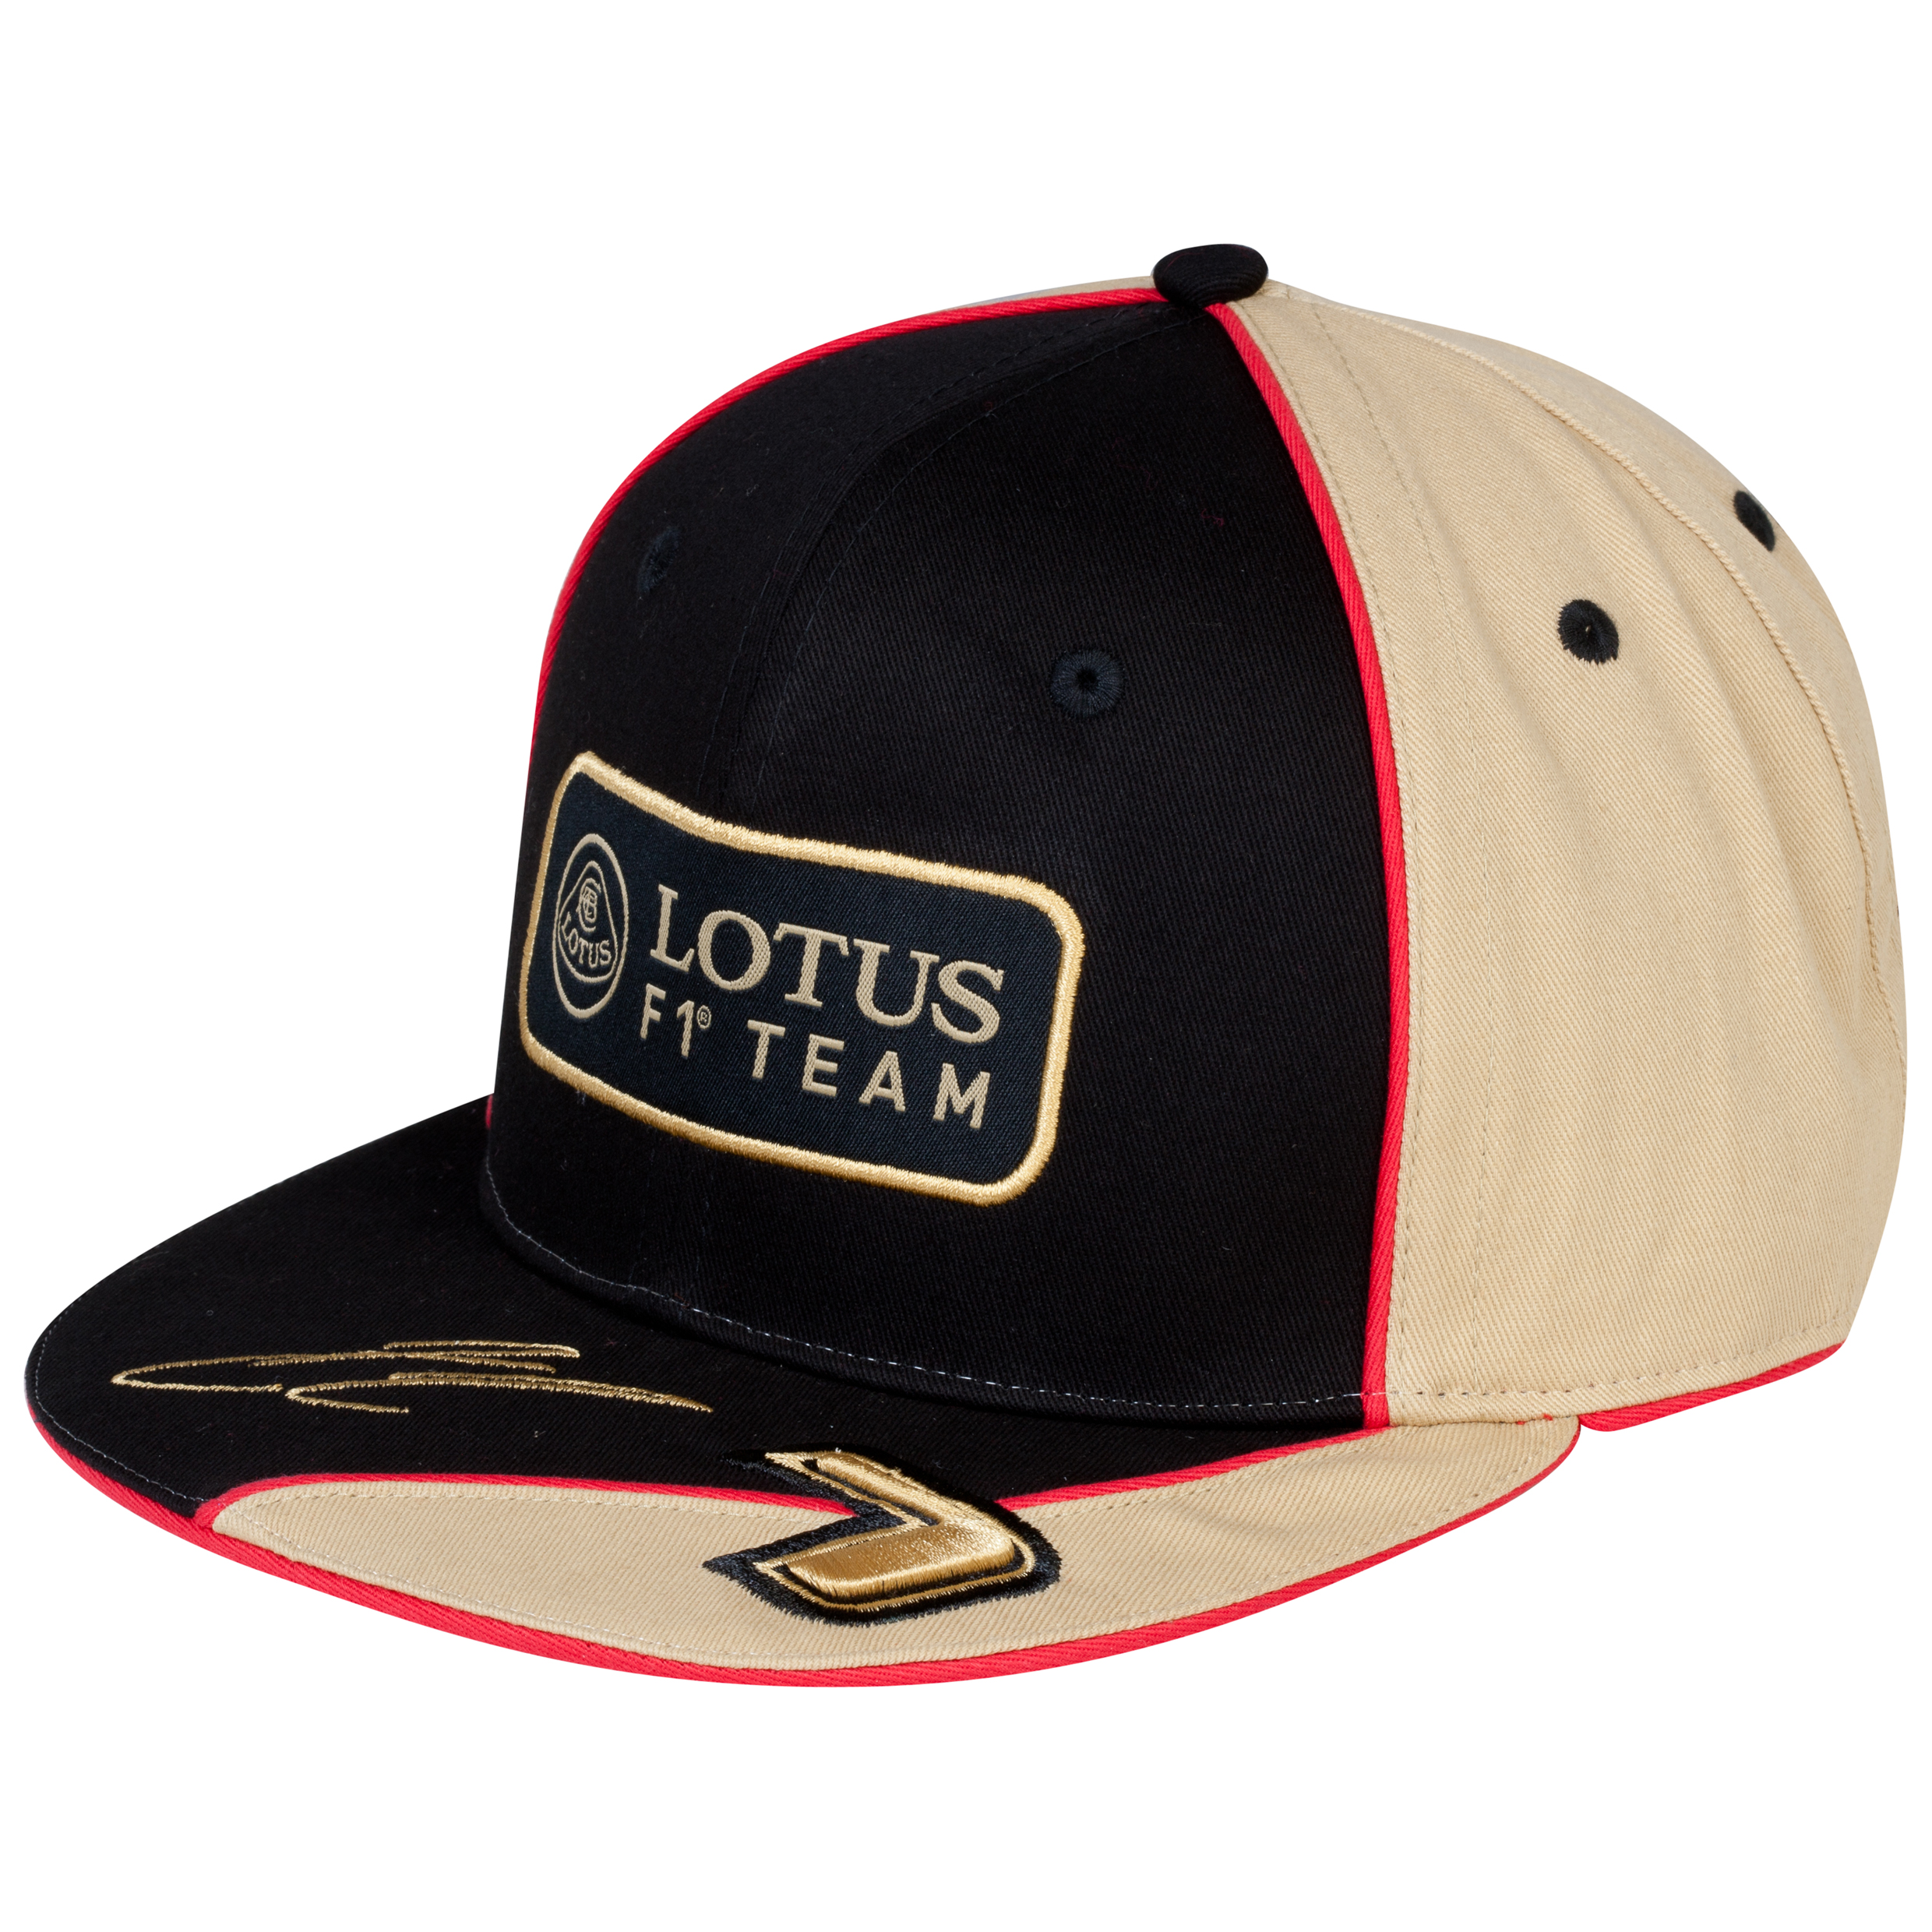 Lotus F1 Team 2013 F1 Replica Kimi Cap